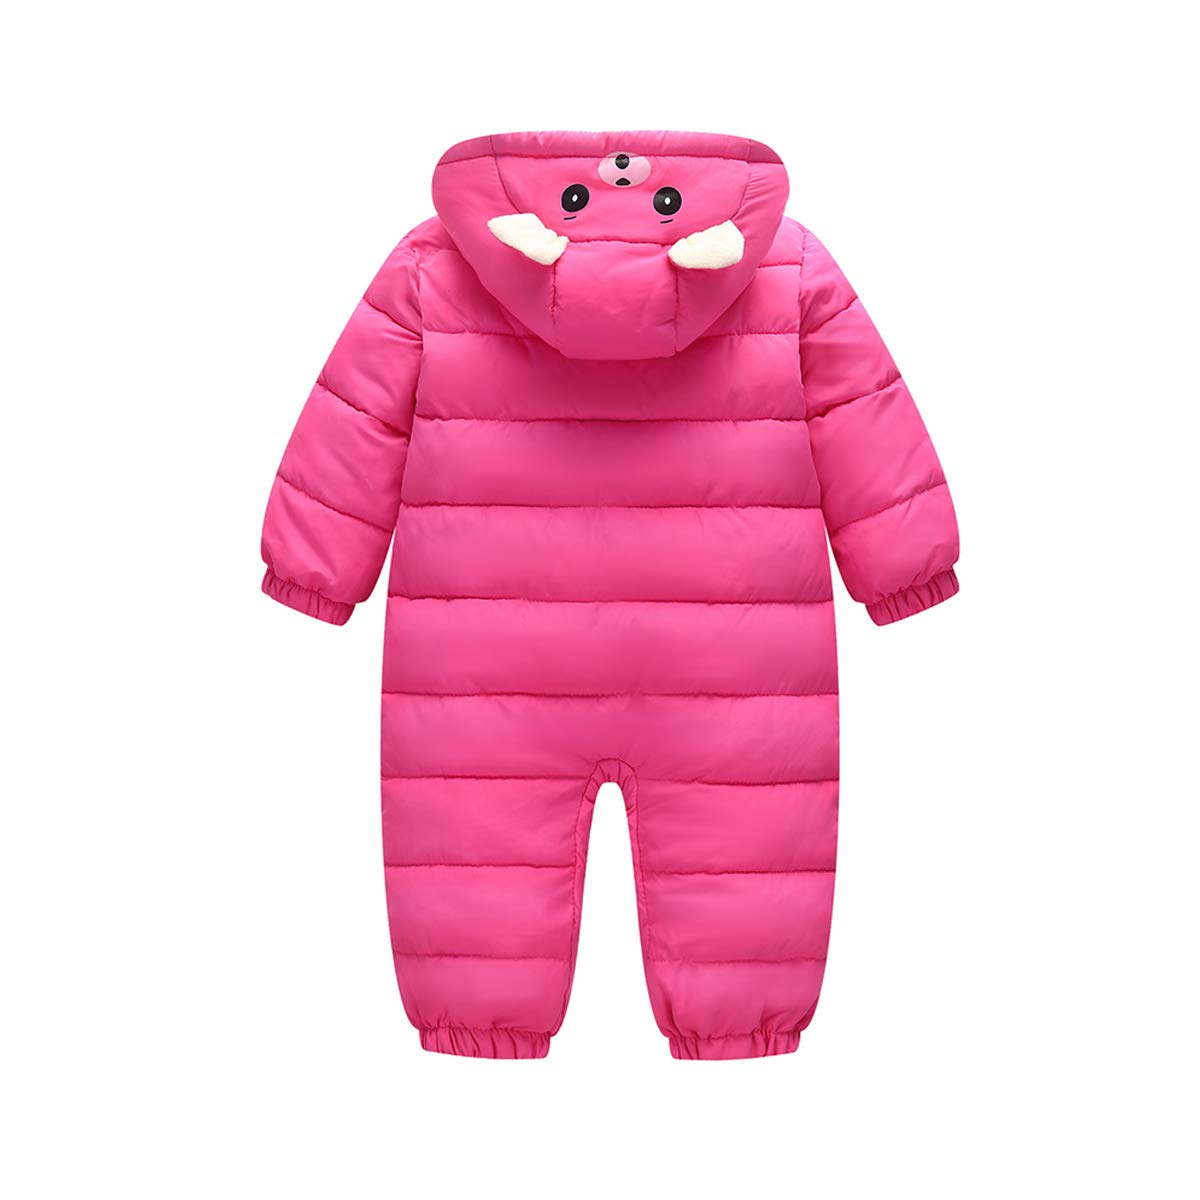 maduang Baby Boys Girls Hooded Jumpsuit Climbing Suit Thicken Cotton Down Padded Cute Jacket